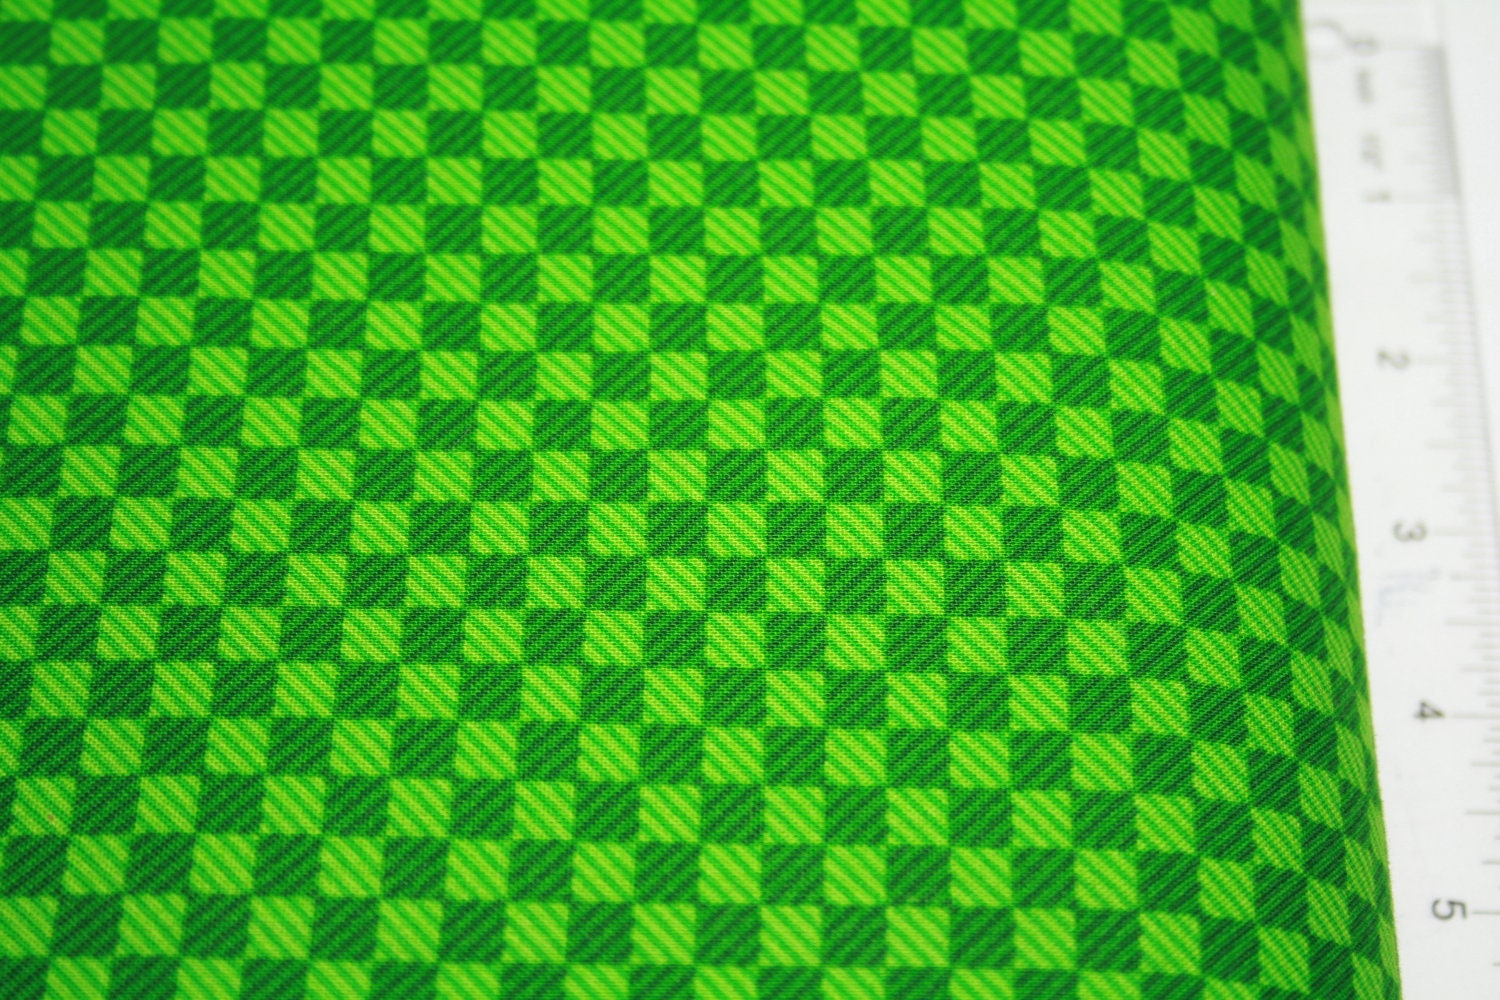 Green checkerboard by choice for Minecraft fabric by the yard